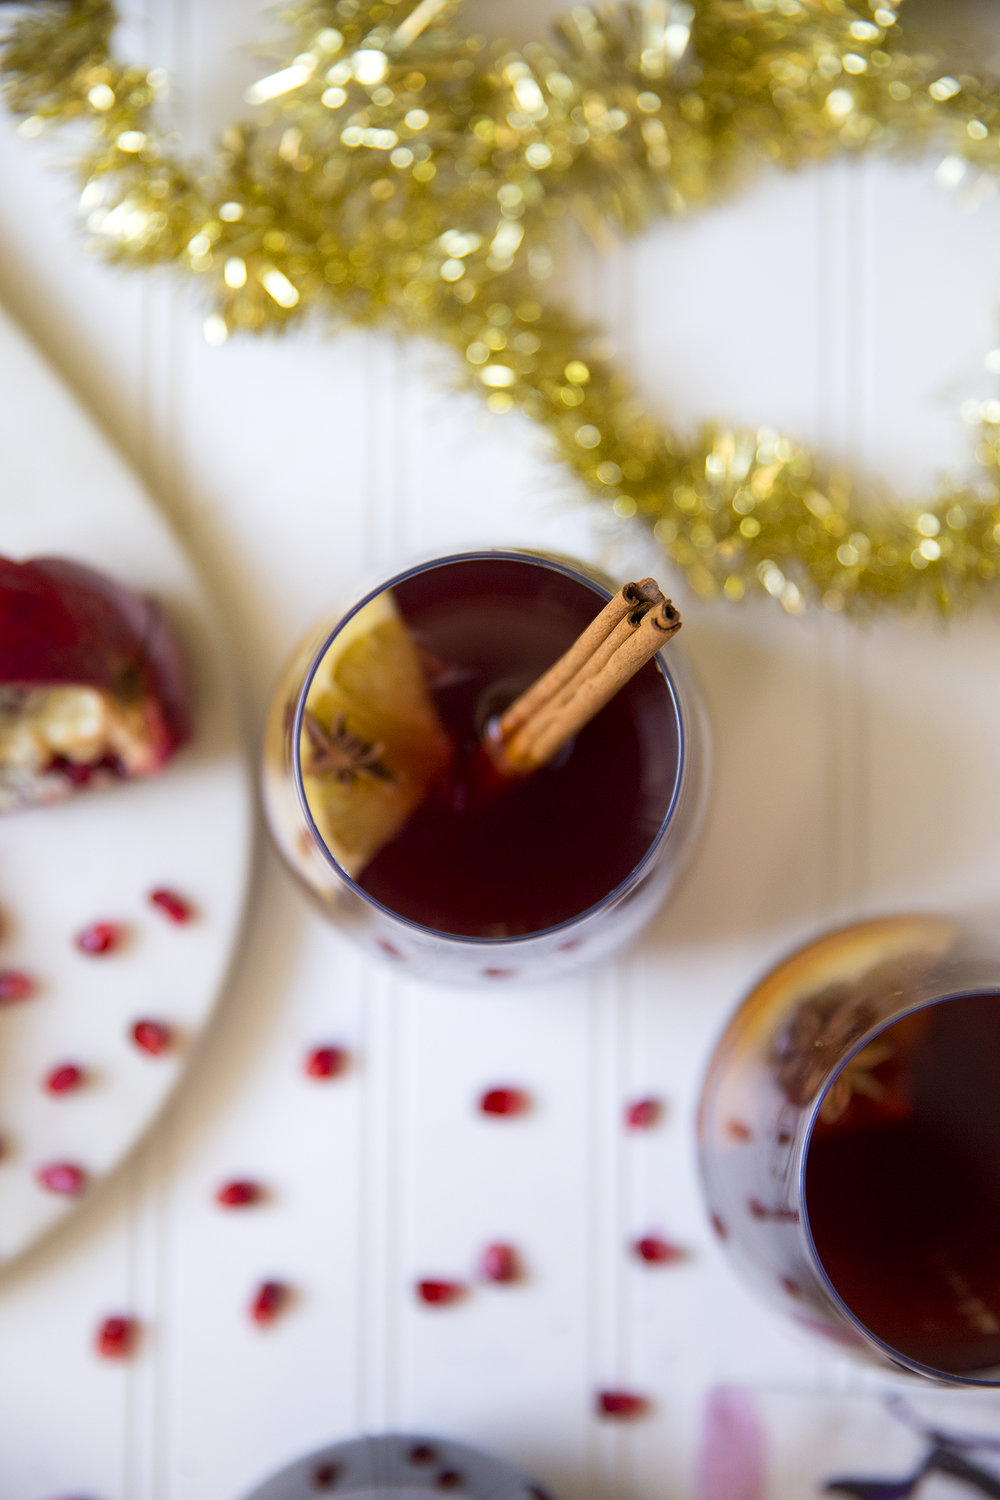 Garnish this Mulled Wine with pomegranate seeds, cinnamon sticks, orange slices or star anise. UnusuallyLovely.com